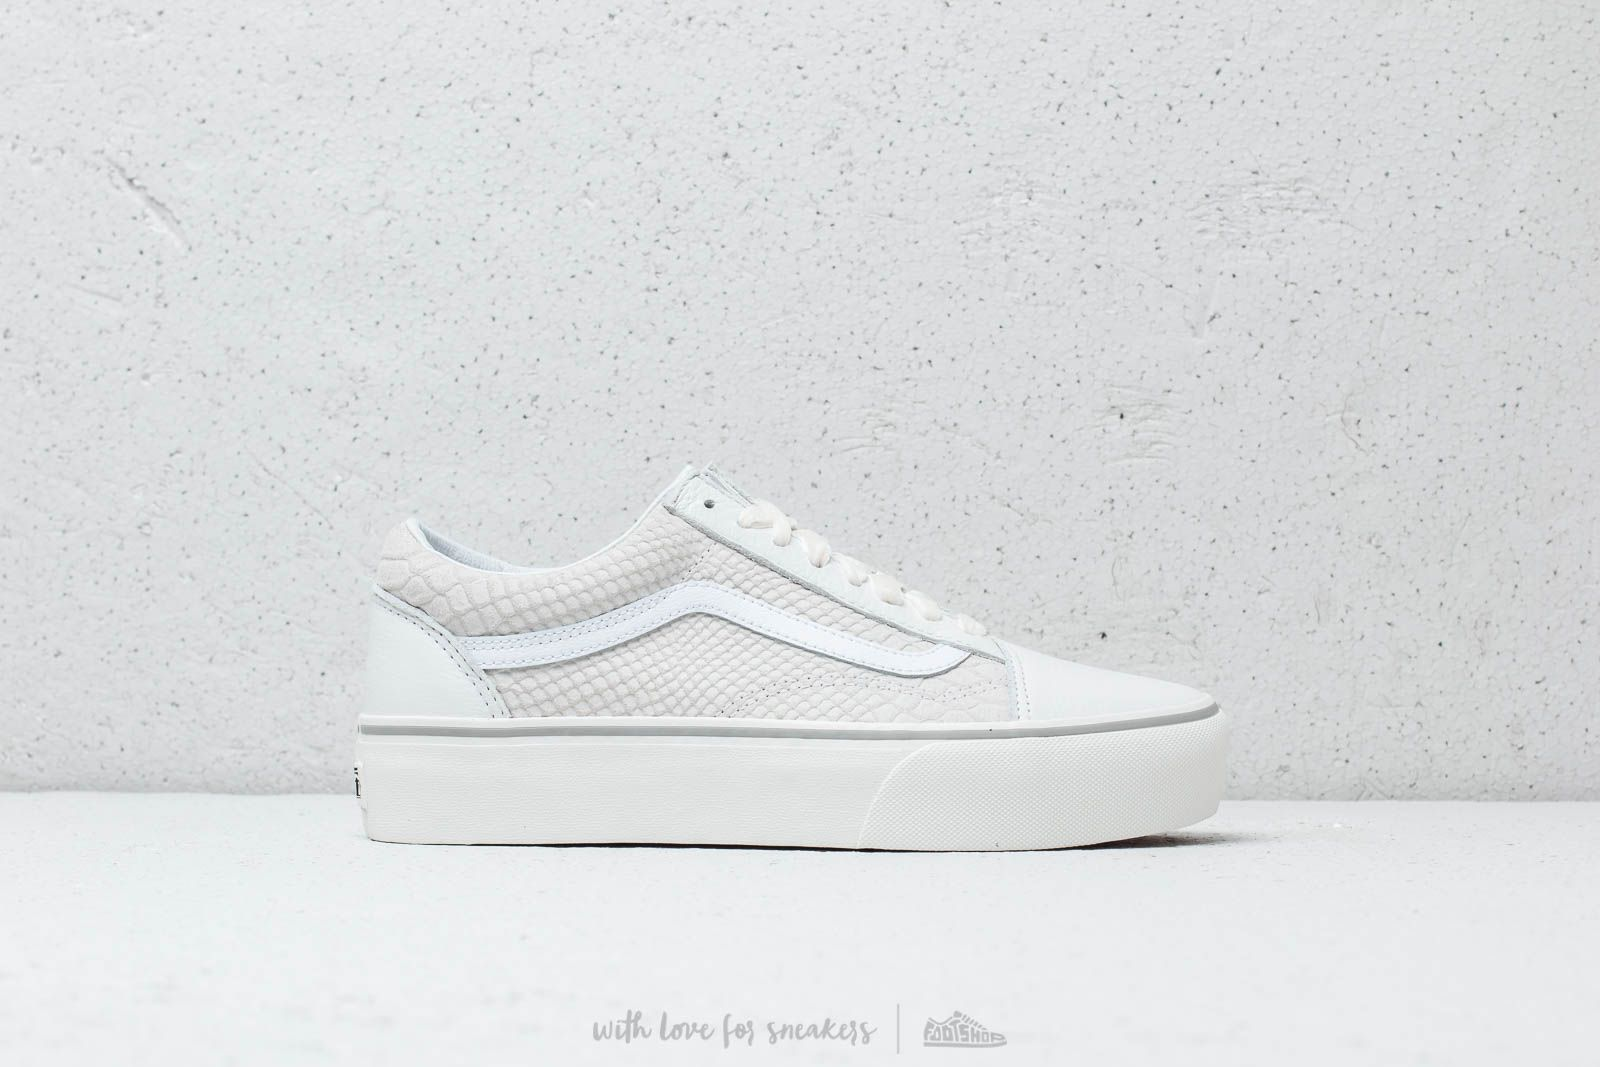 d0ba04609b13 Vans Old Skool Platform (Leather) Snake  White at a great price 100 €